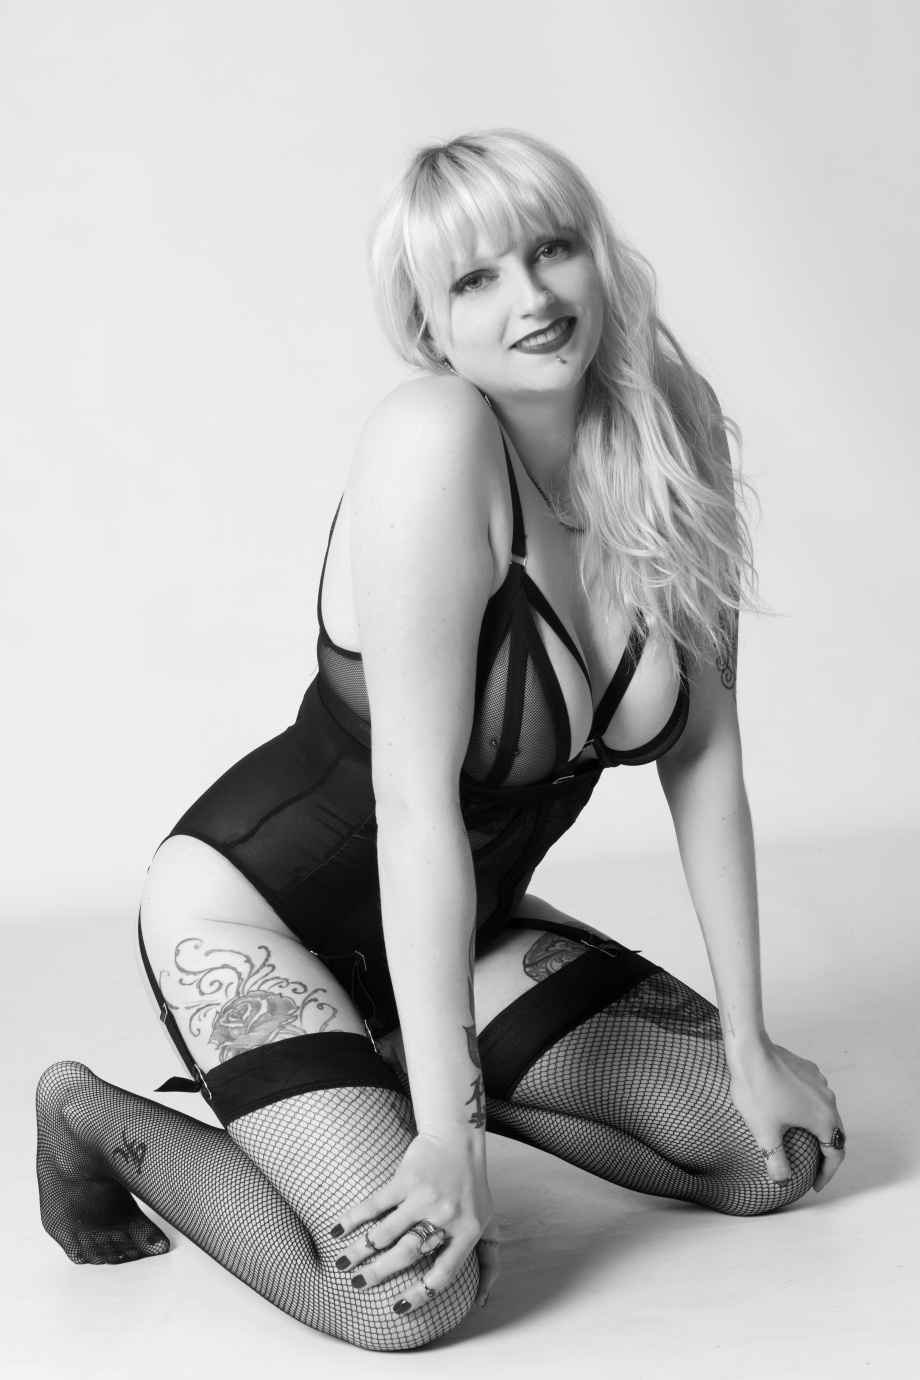 portrait, black and white, studio, glamour, ireland, cork, blonde, lingerie, boudoir